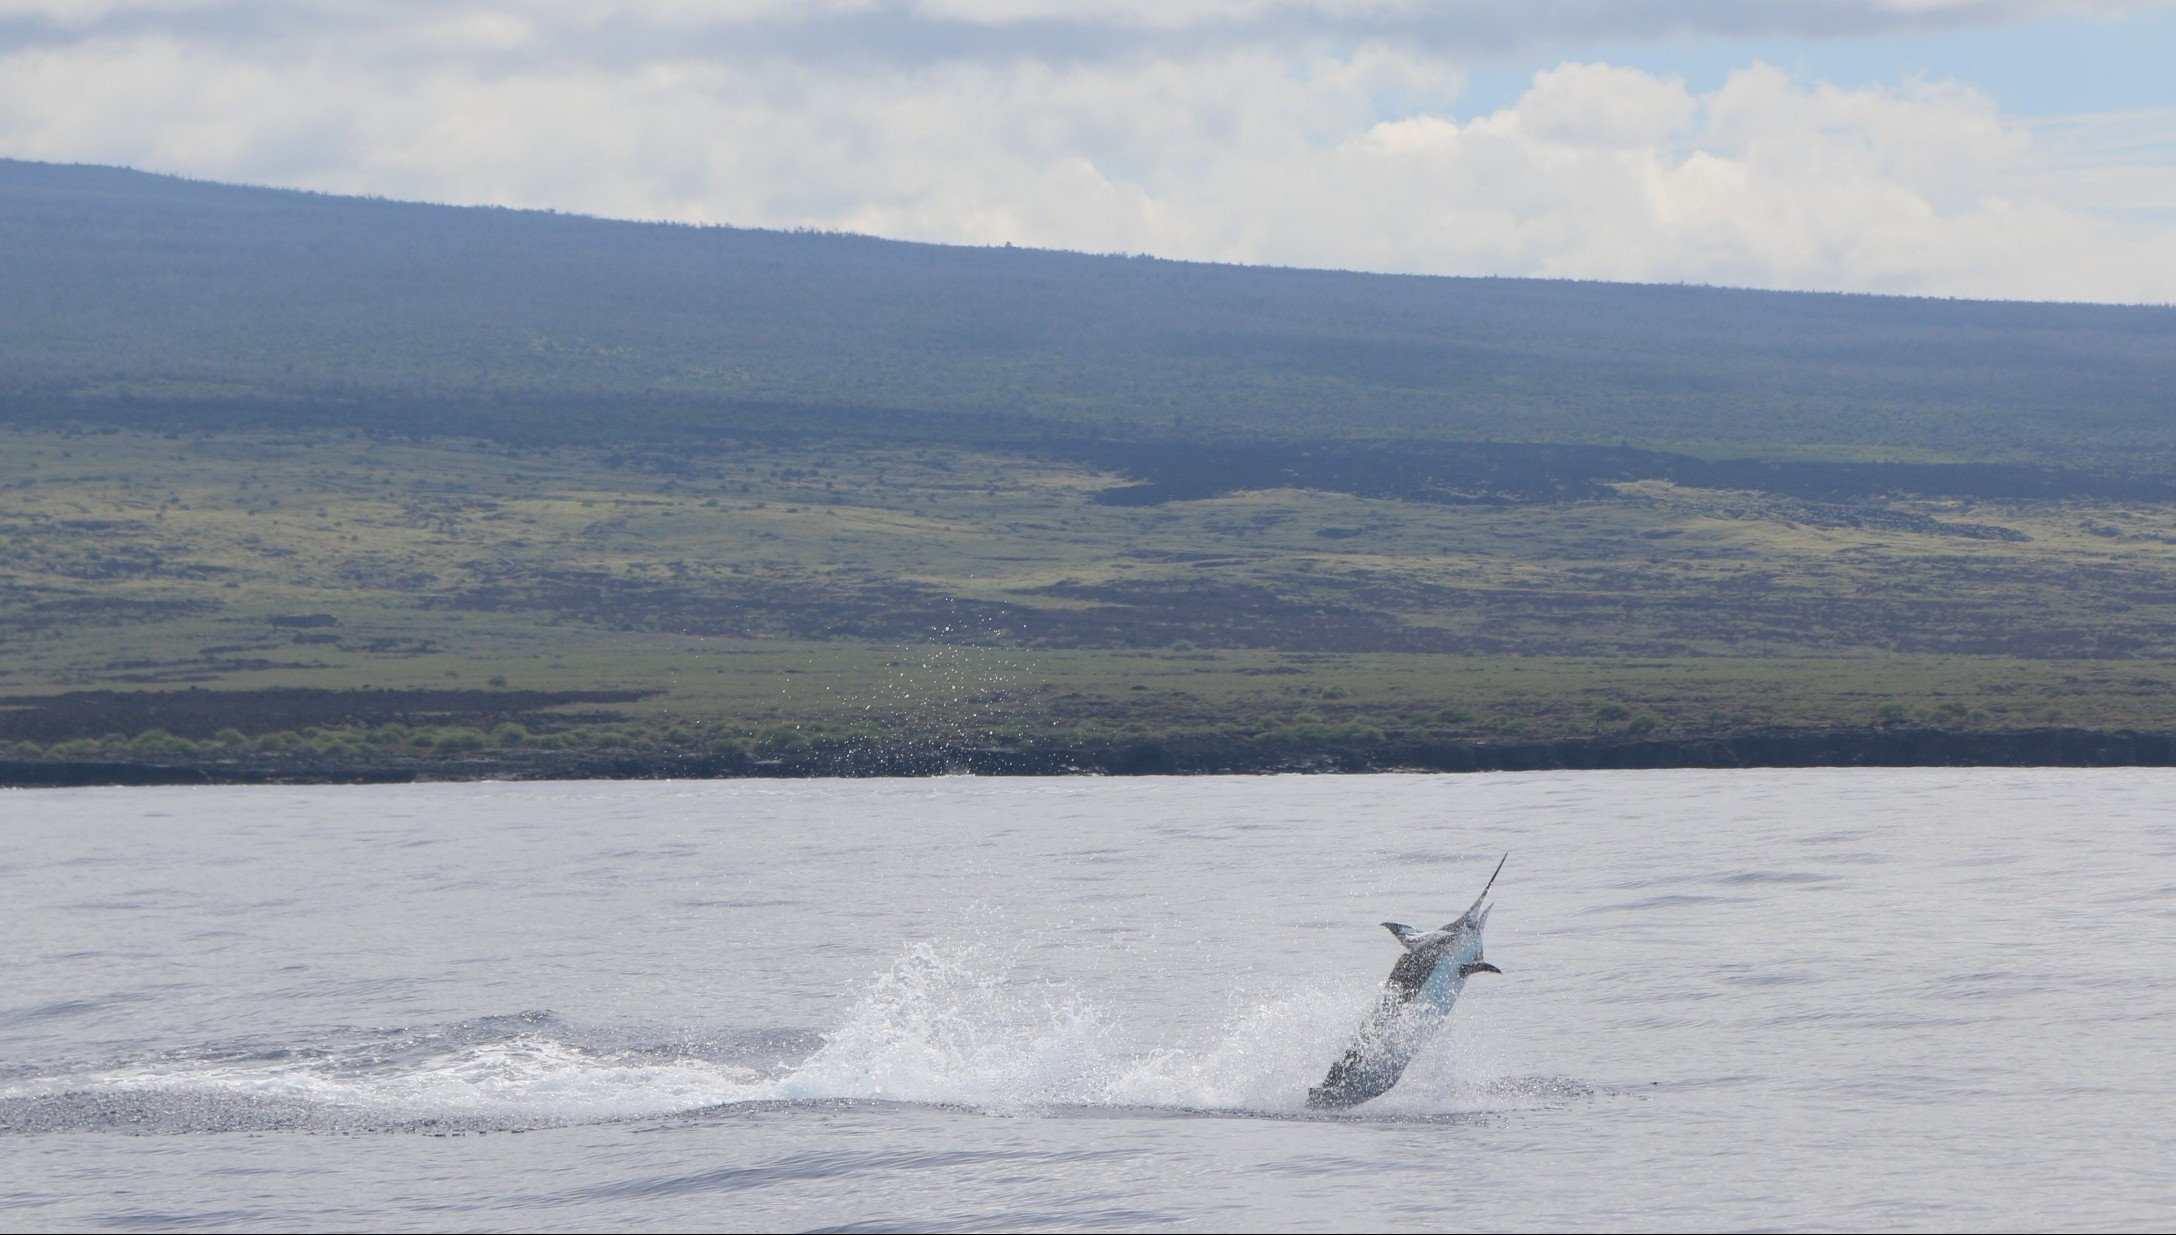 Kona Report: At least 15 blues over 500 pounds reported in January